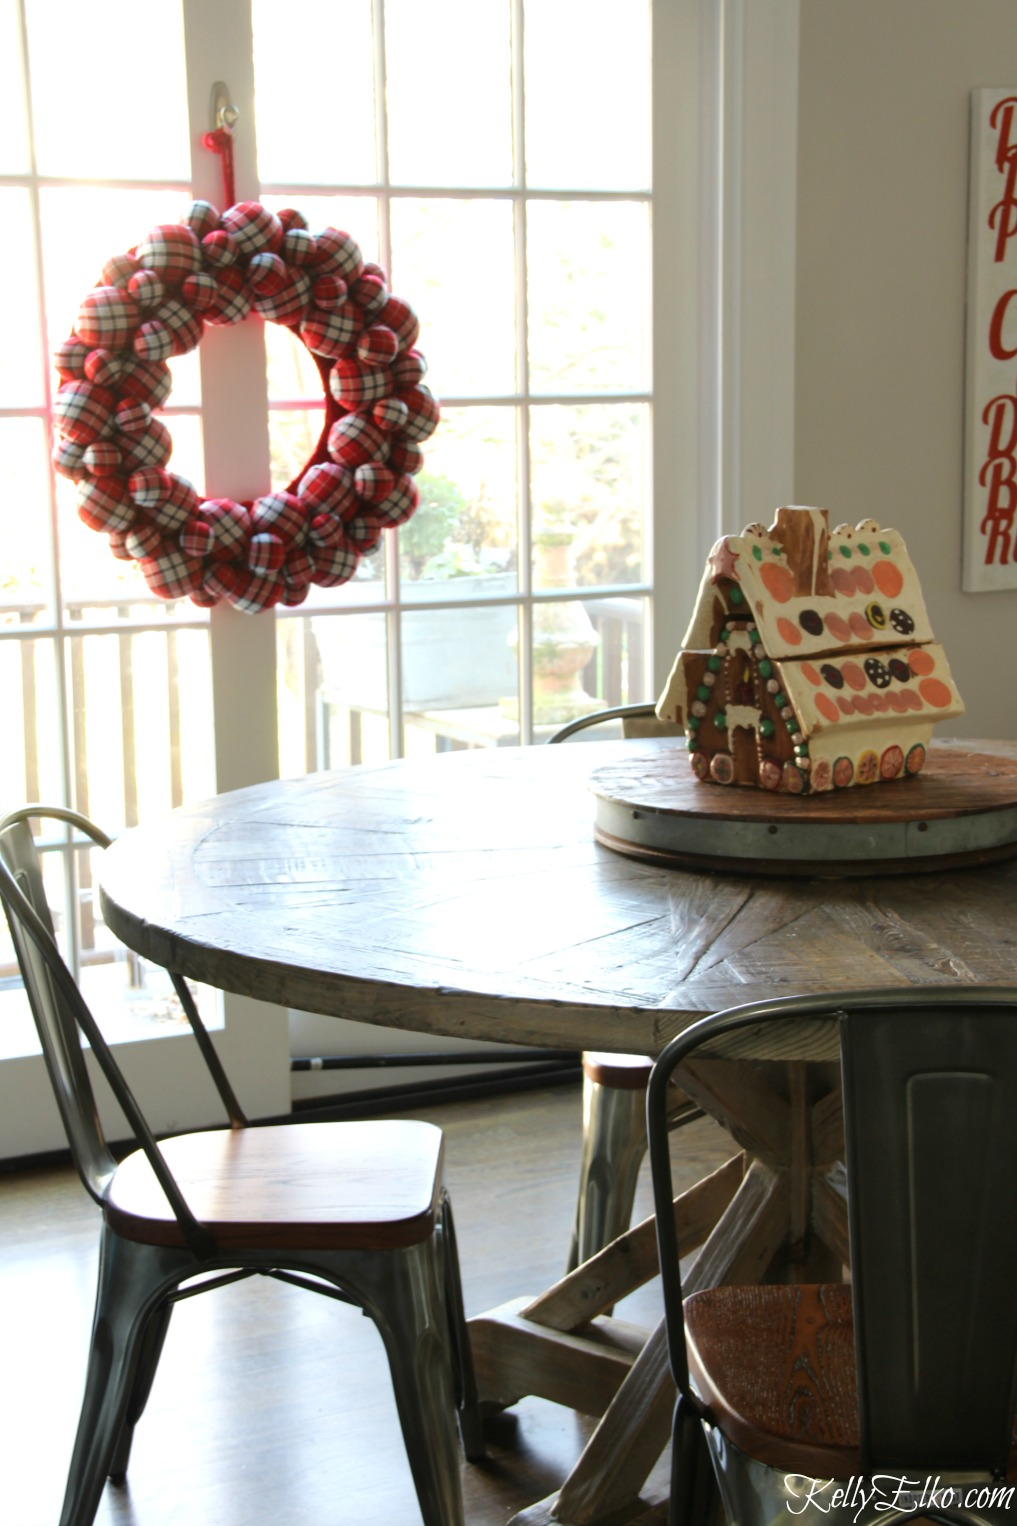 Christmas Kitchen - love this farmhouse table and chairs with giant plaid wreath kellyelko.com